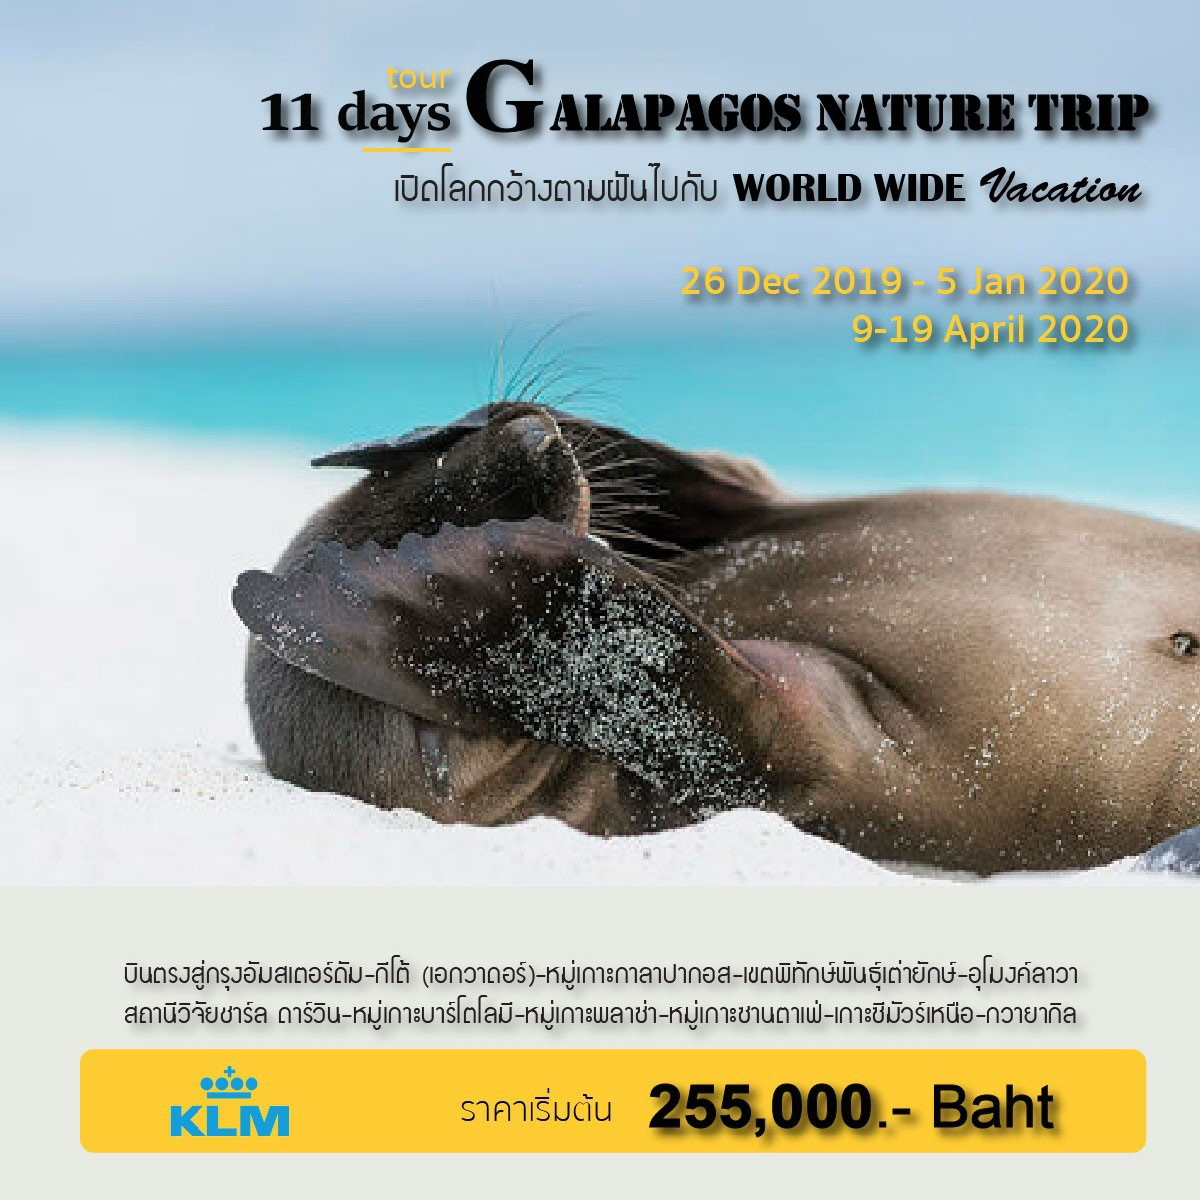 WWV18_Galapagos Nature Trip 11 D_(26 Dec 2019-5 Jan 2020 & 9-19 Apr 2020)